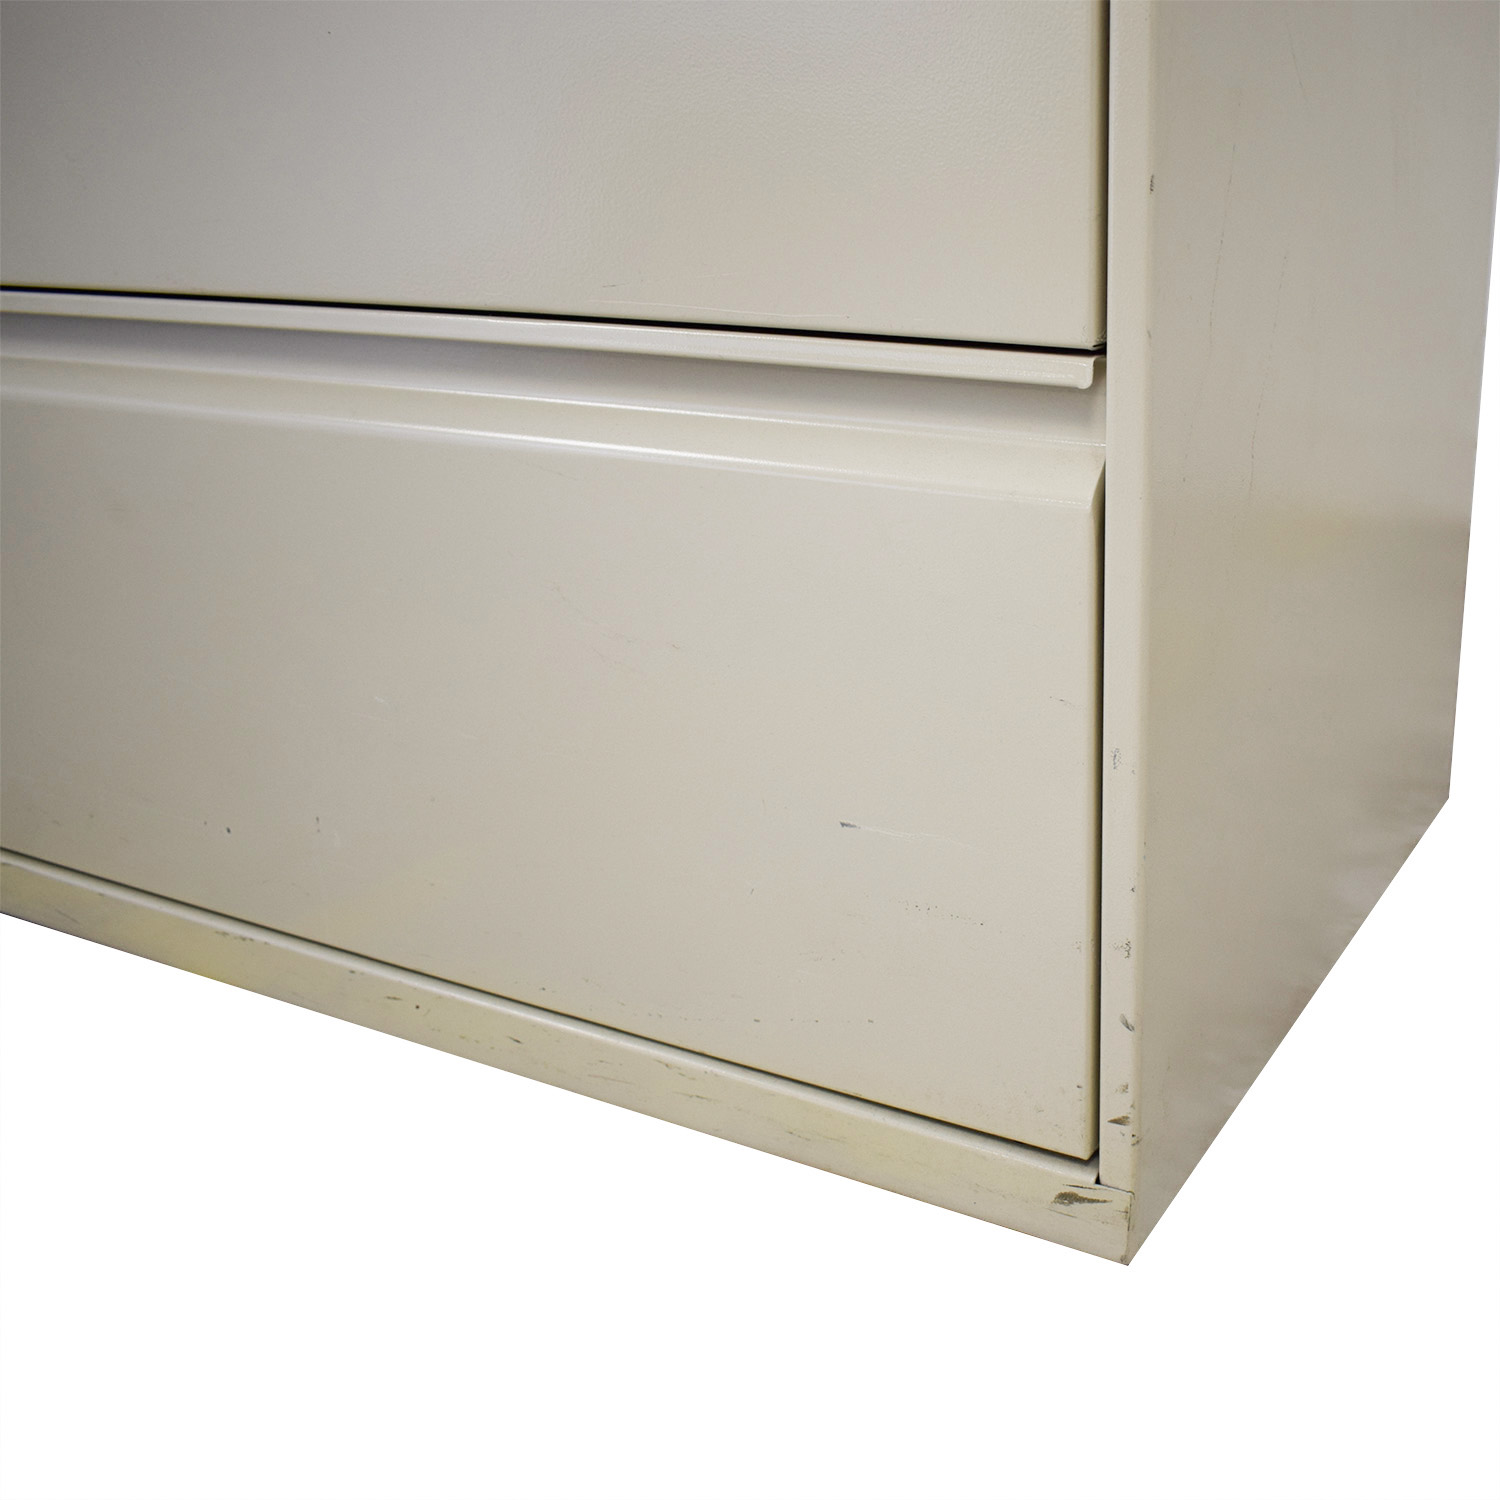 Hon Hon Five Drawer Lateral File Cabinet dimensions